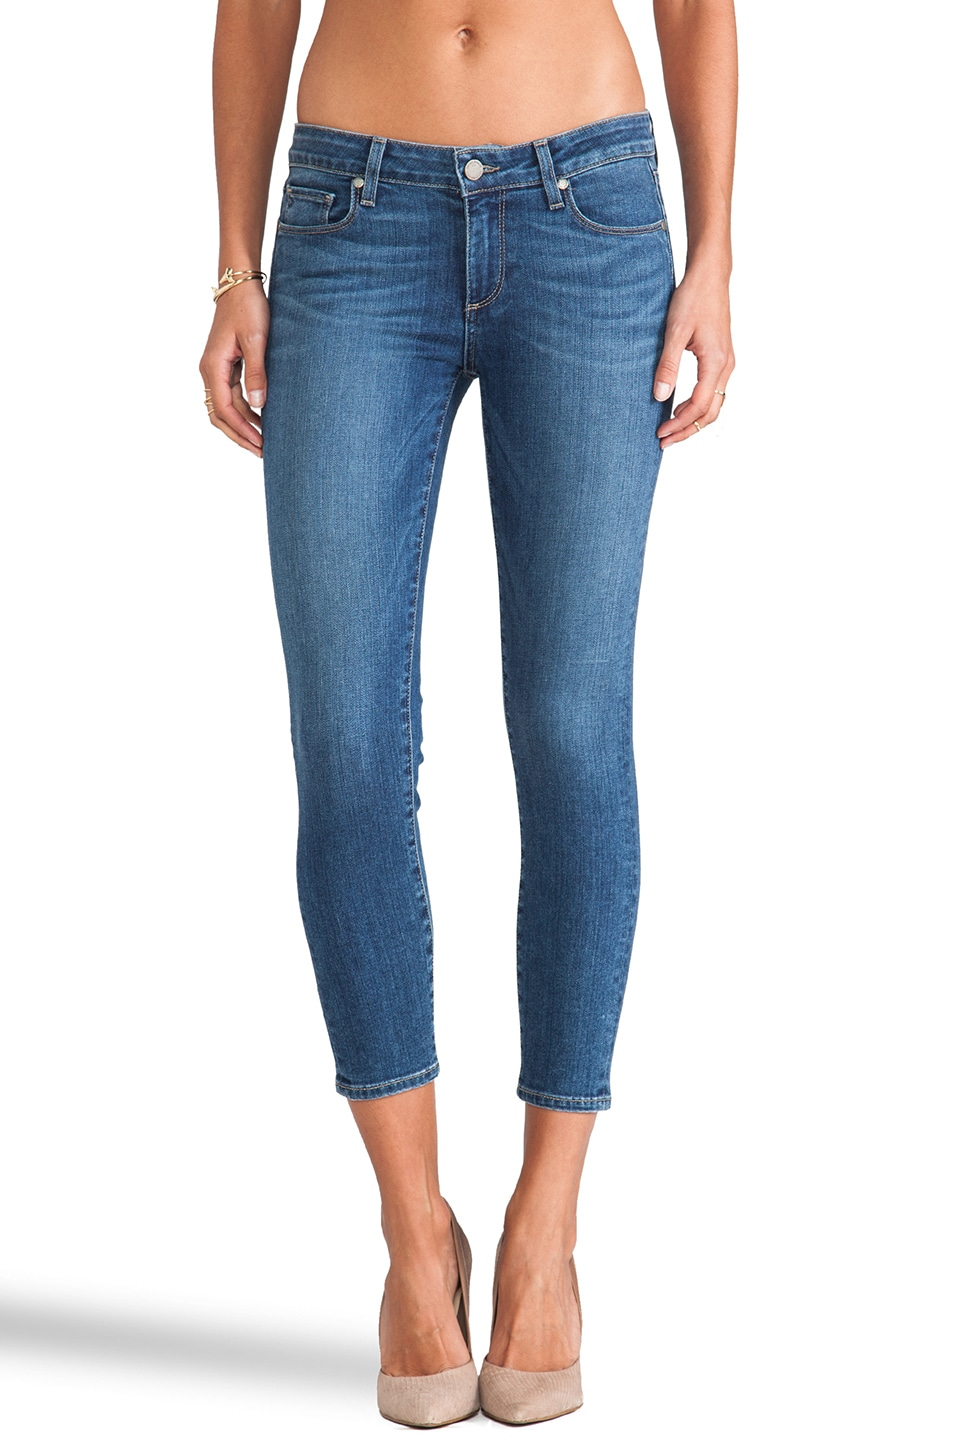 PAIGE Denim Verdugo Crop in Nevada